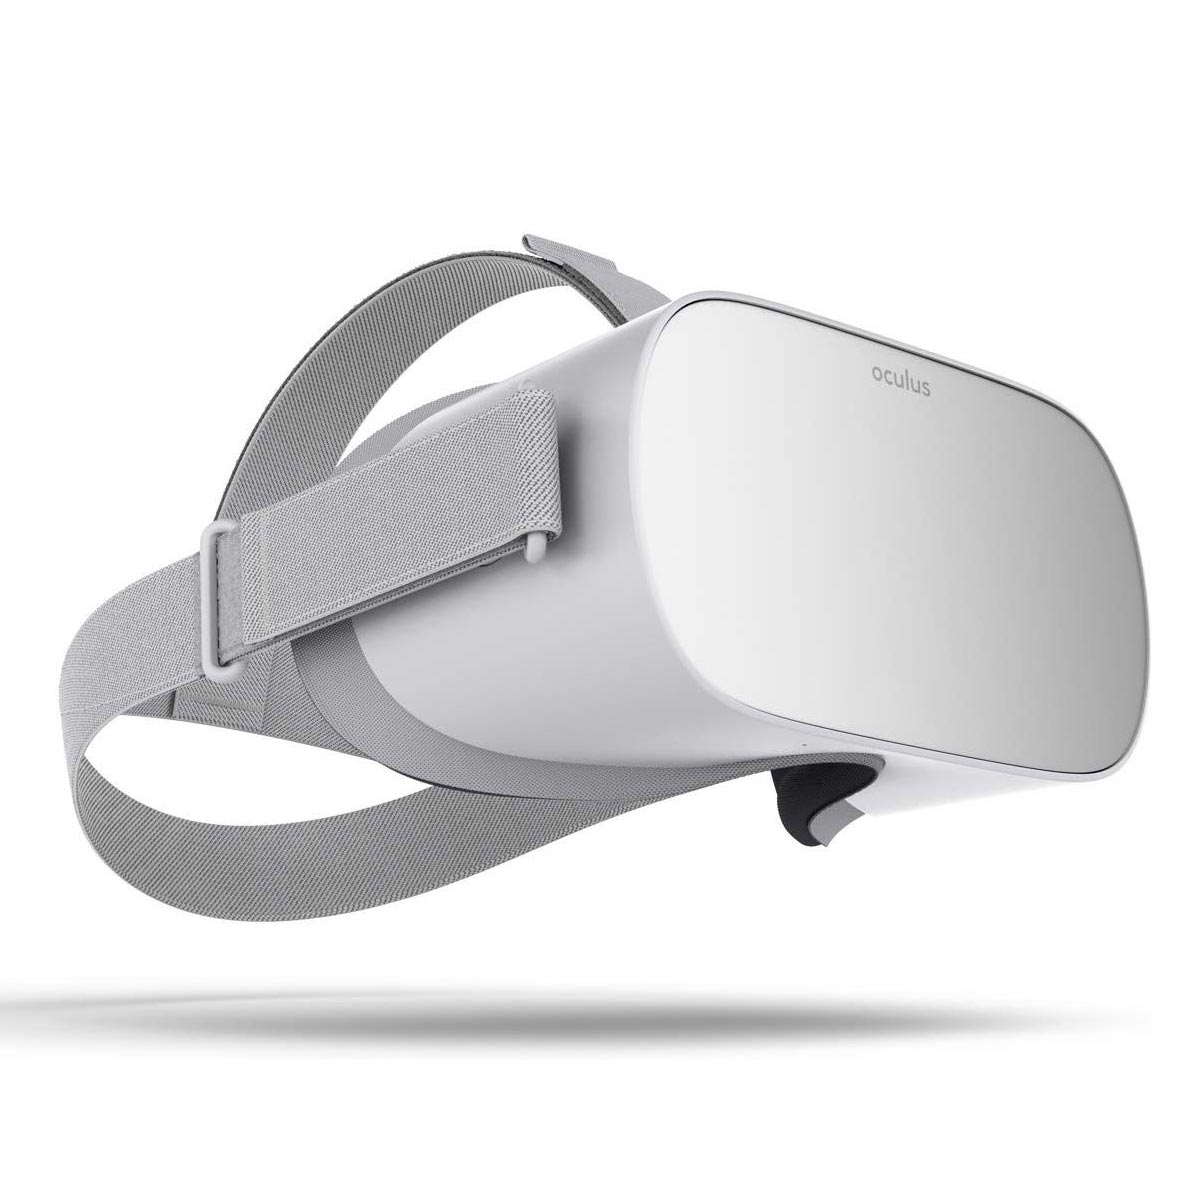 Oculus Go VR Headset (64GB)